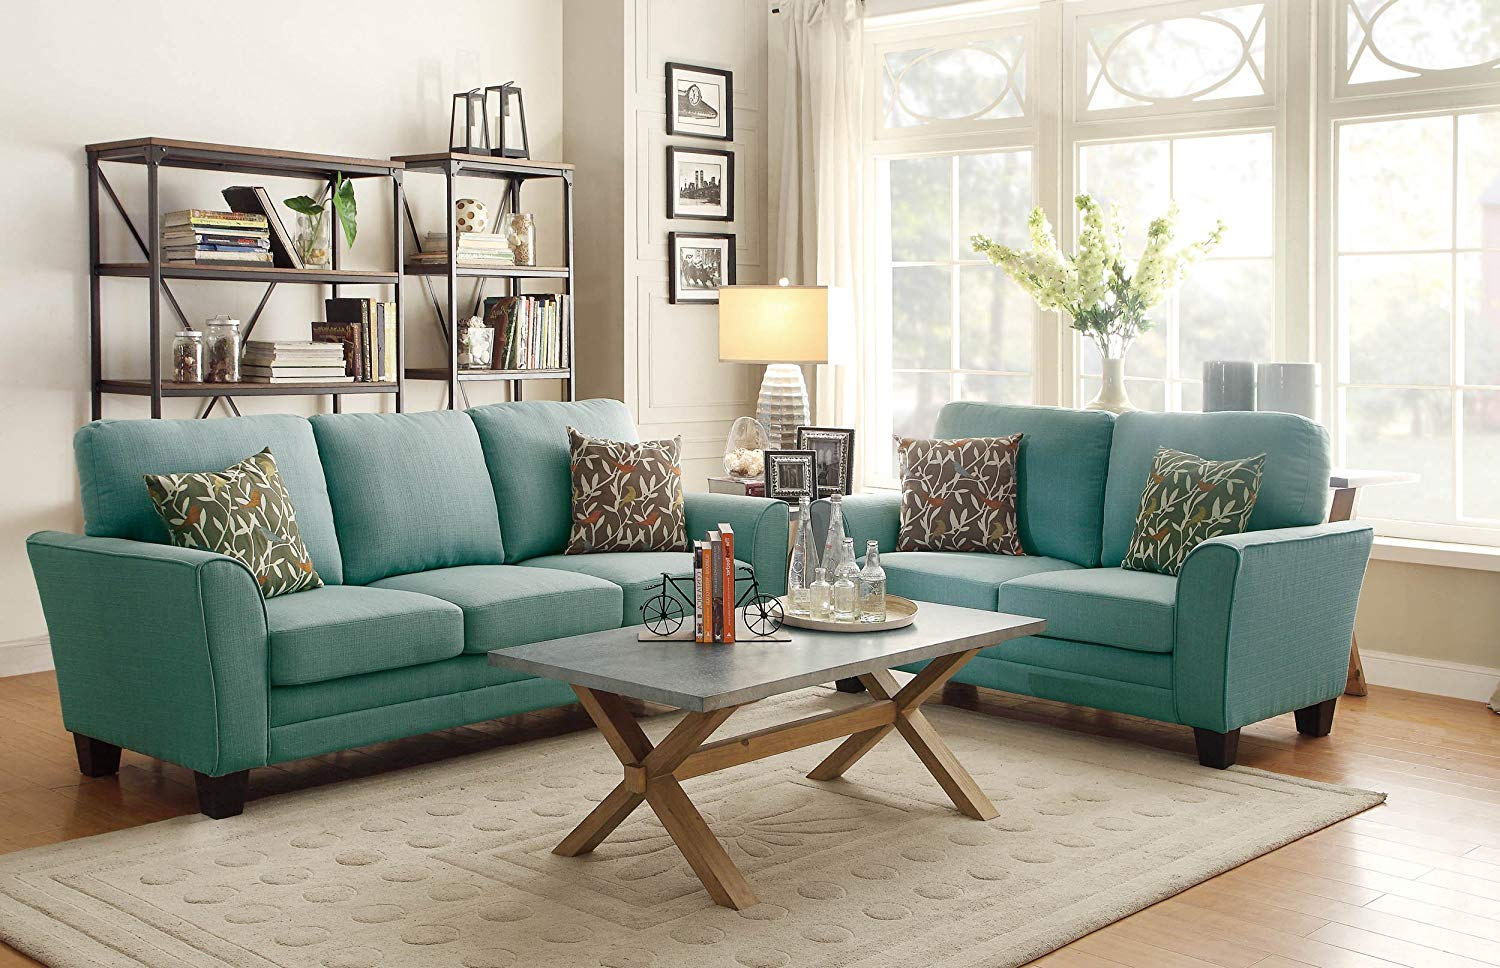 blue-green sofa amazon.com: homelegance 8413tl-3 fully upholstered with piping, linen-like fabric WSGSVGA